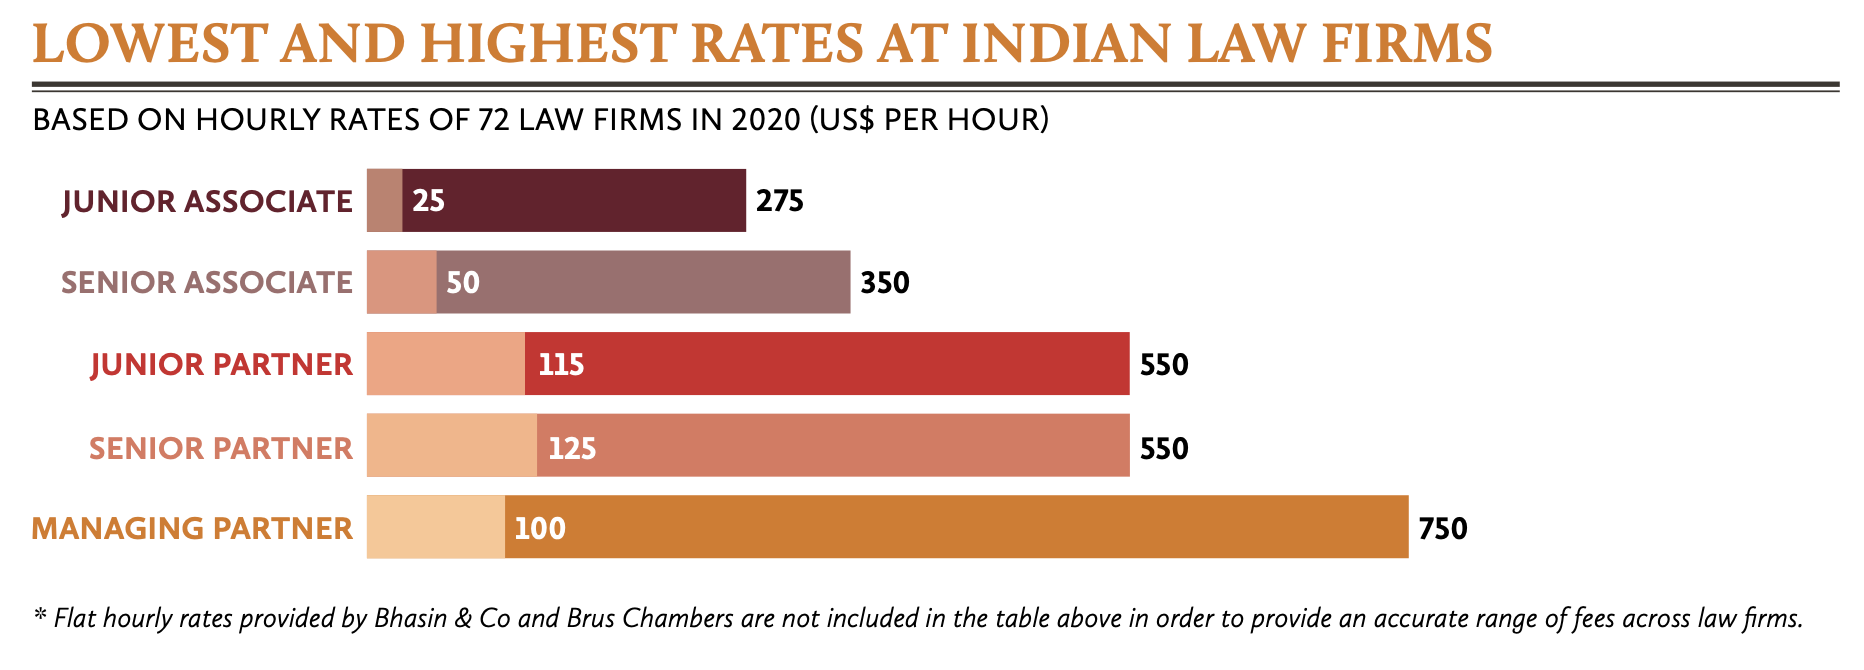 Lowest and highest rates at Indian law firms